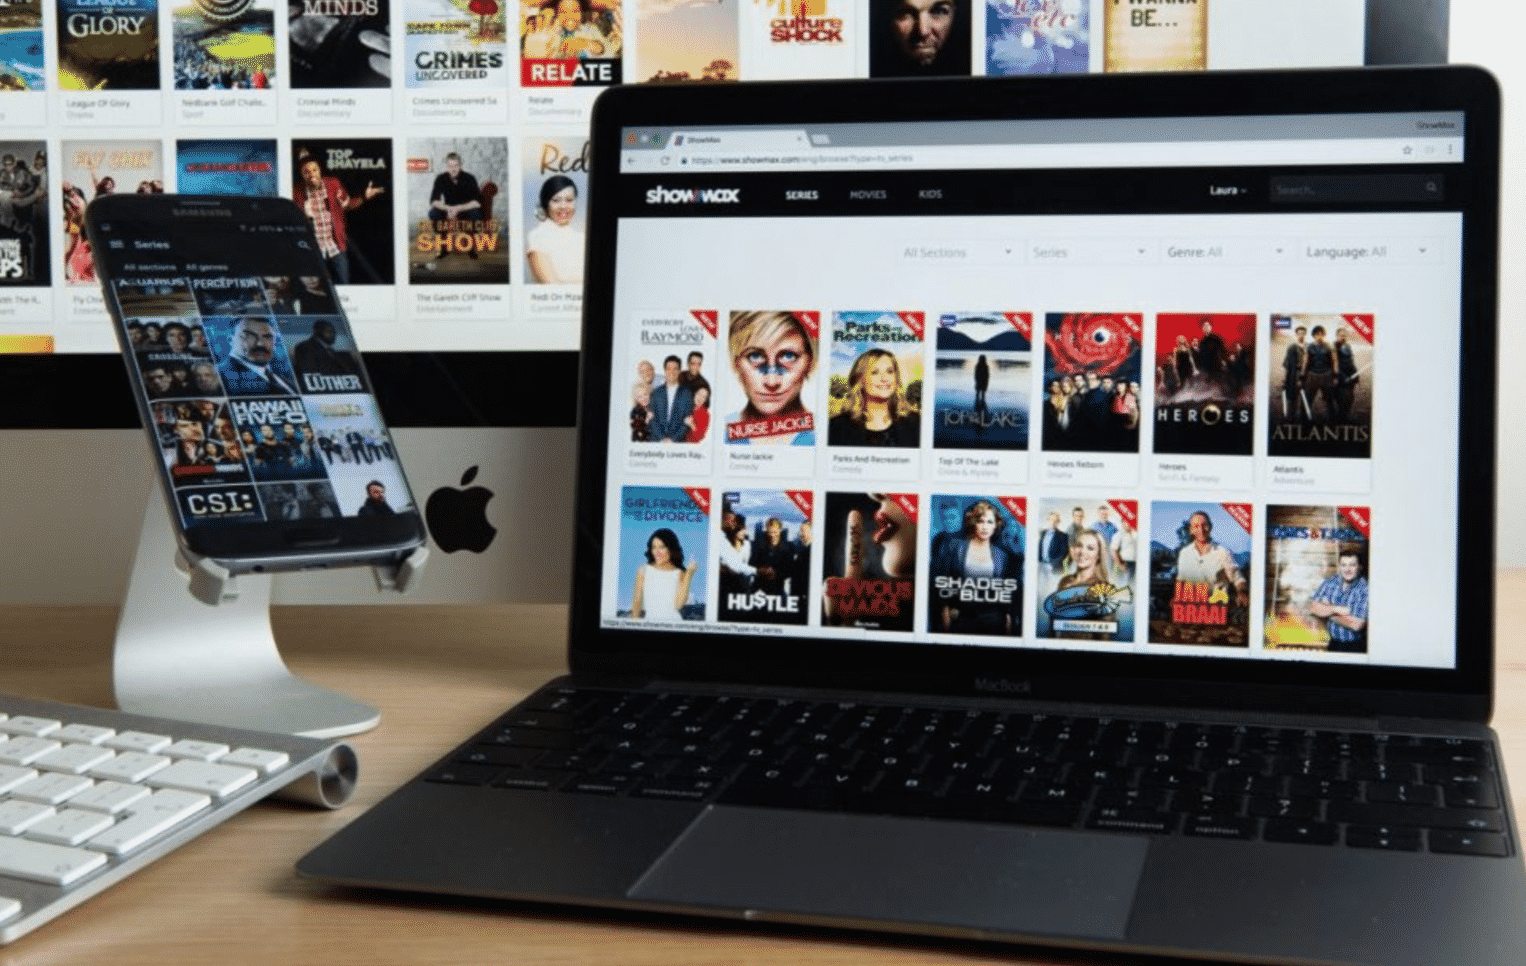 How Much Data Does Streaming Video Use?